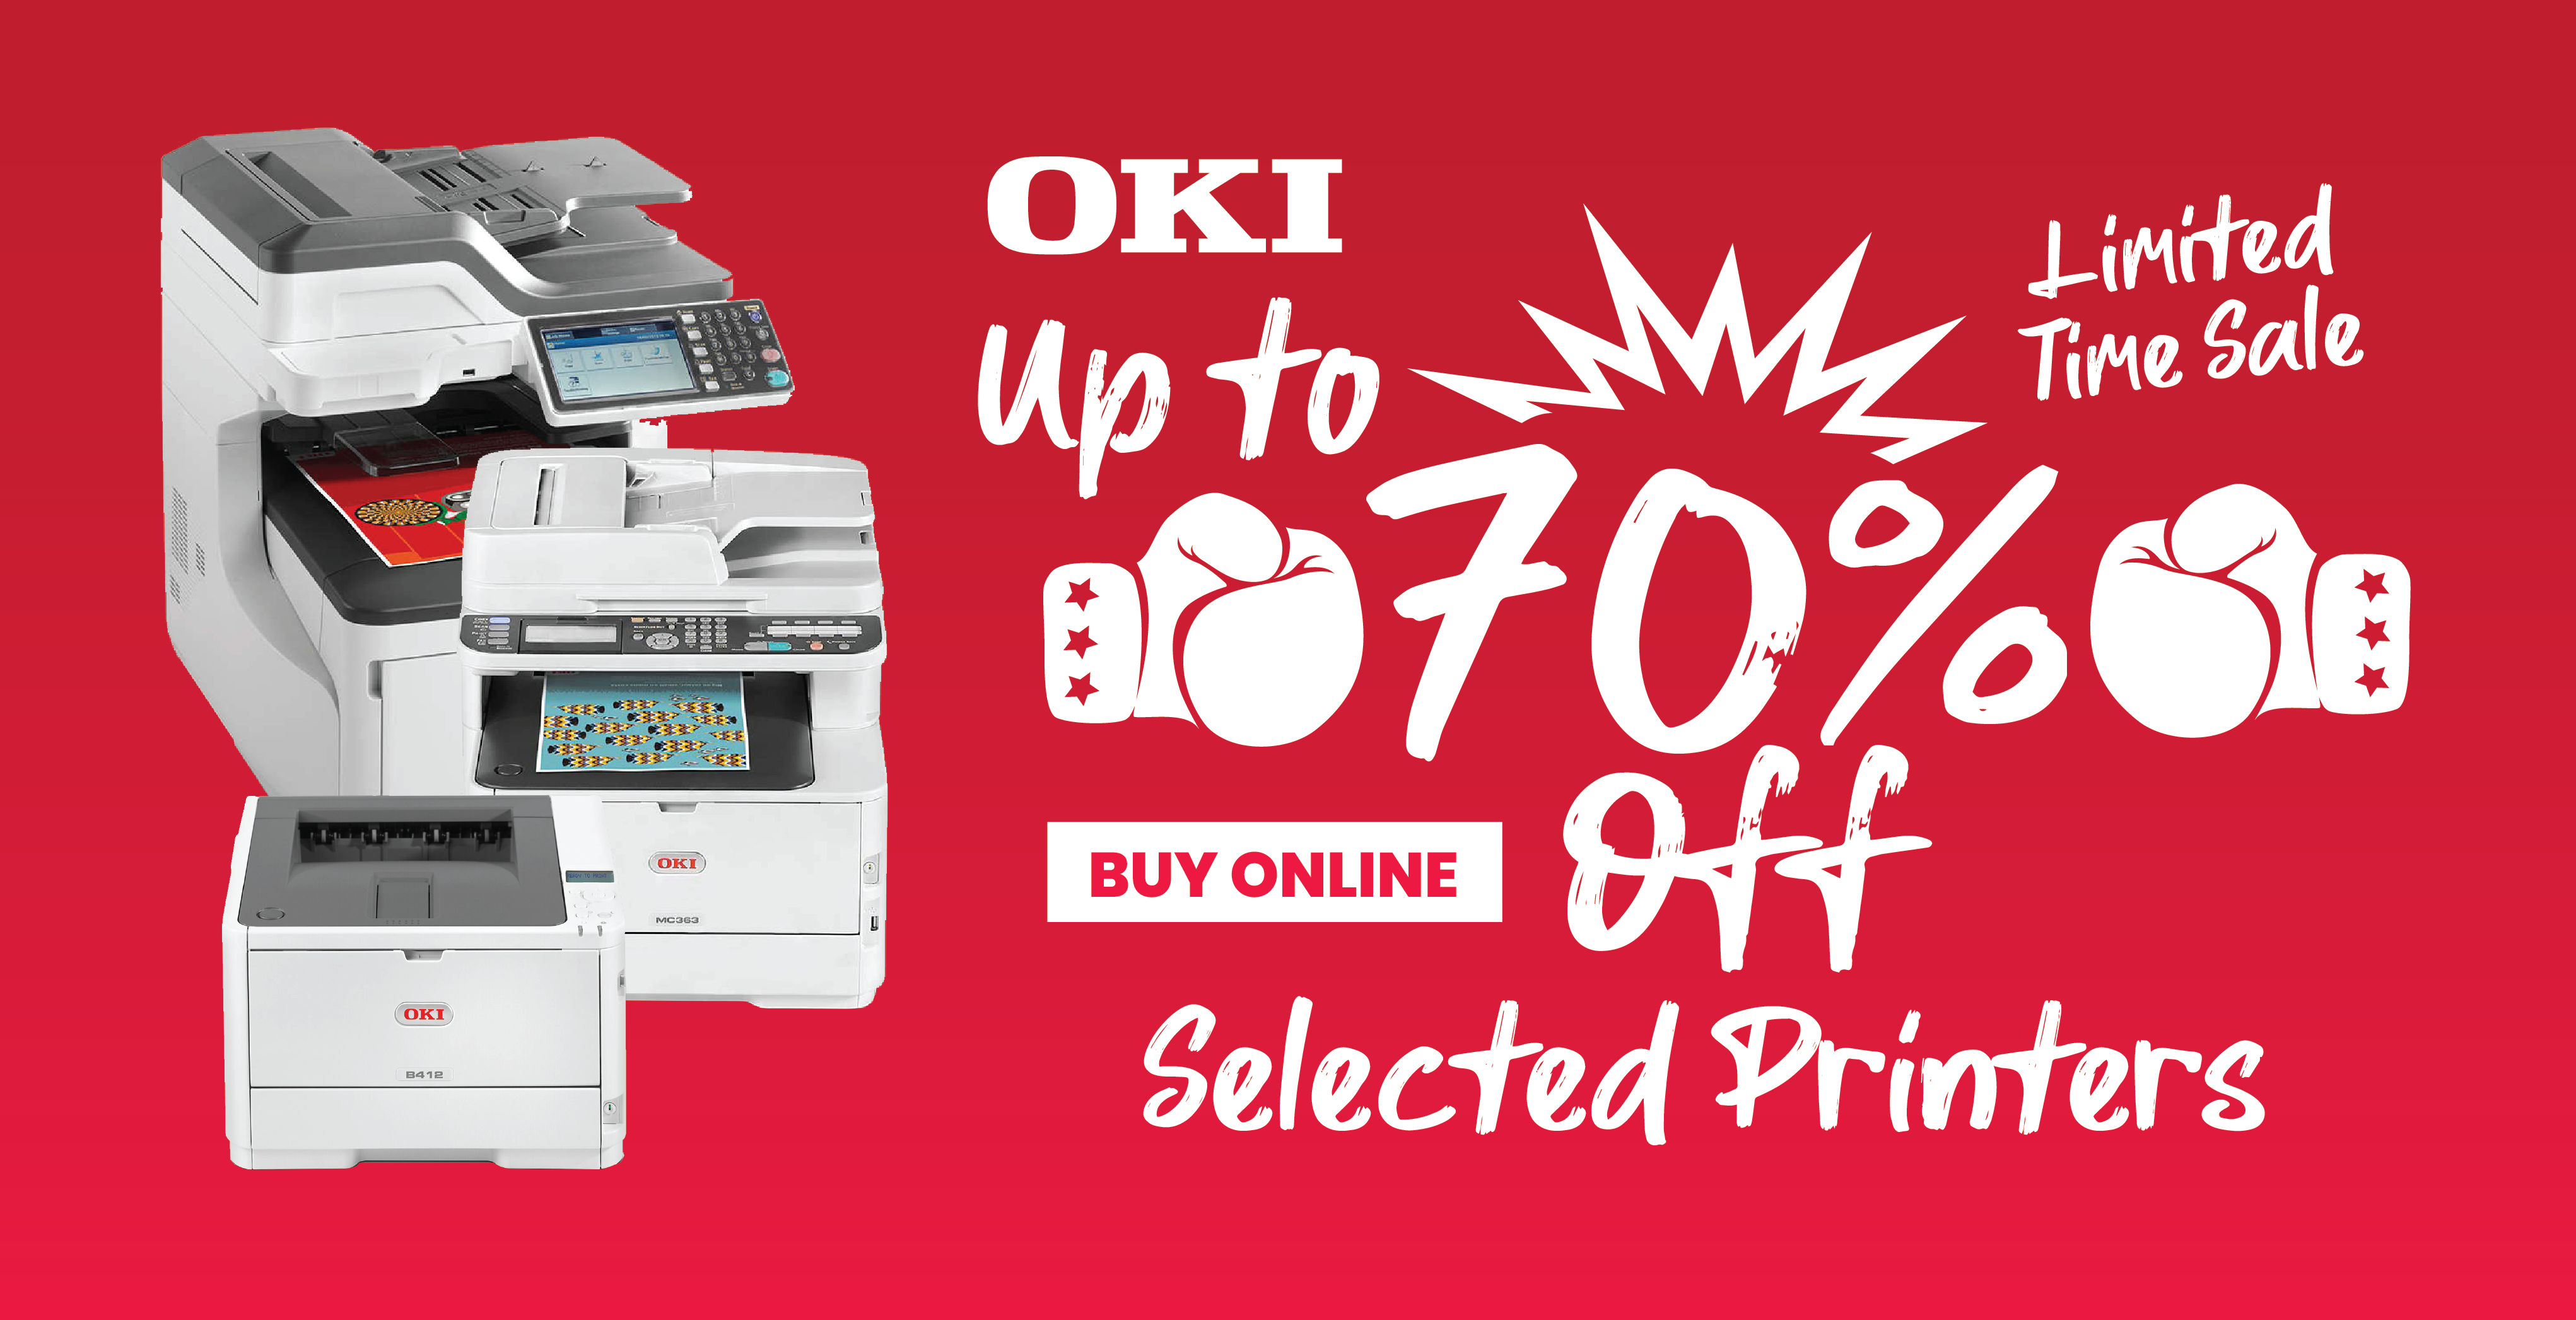 OKI up to 70% off selected printers